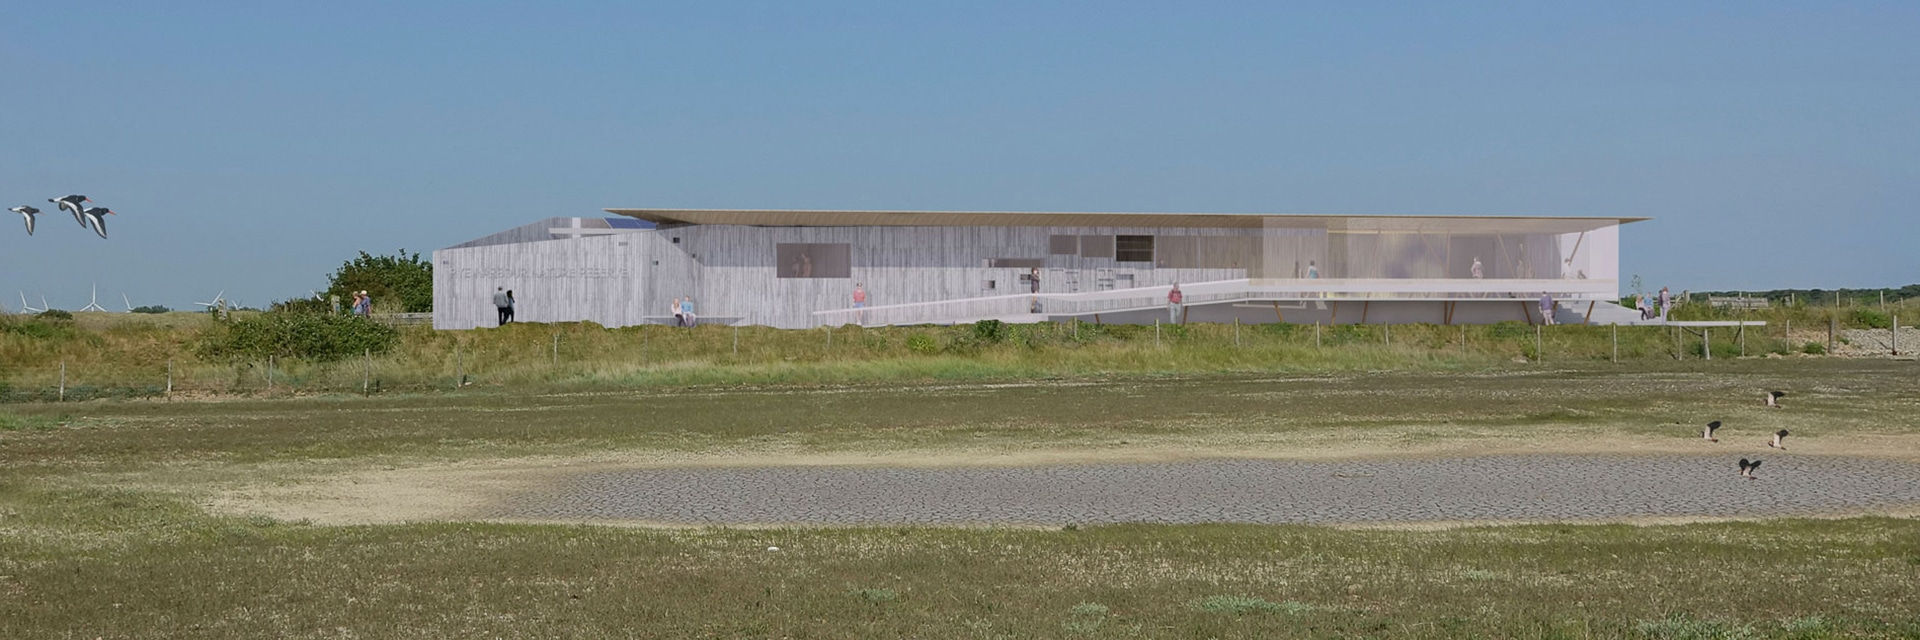 Rye Harbour Discovery Centre Business planning National Heritage Lottery Fund, May 2019